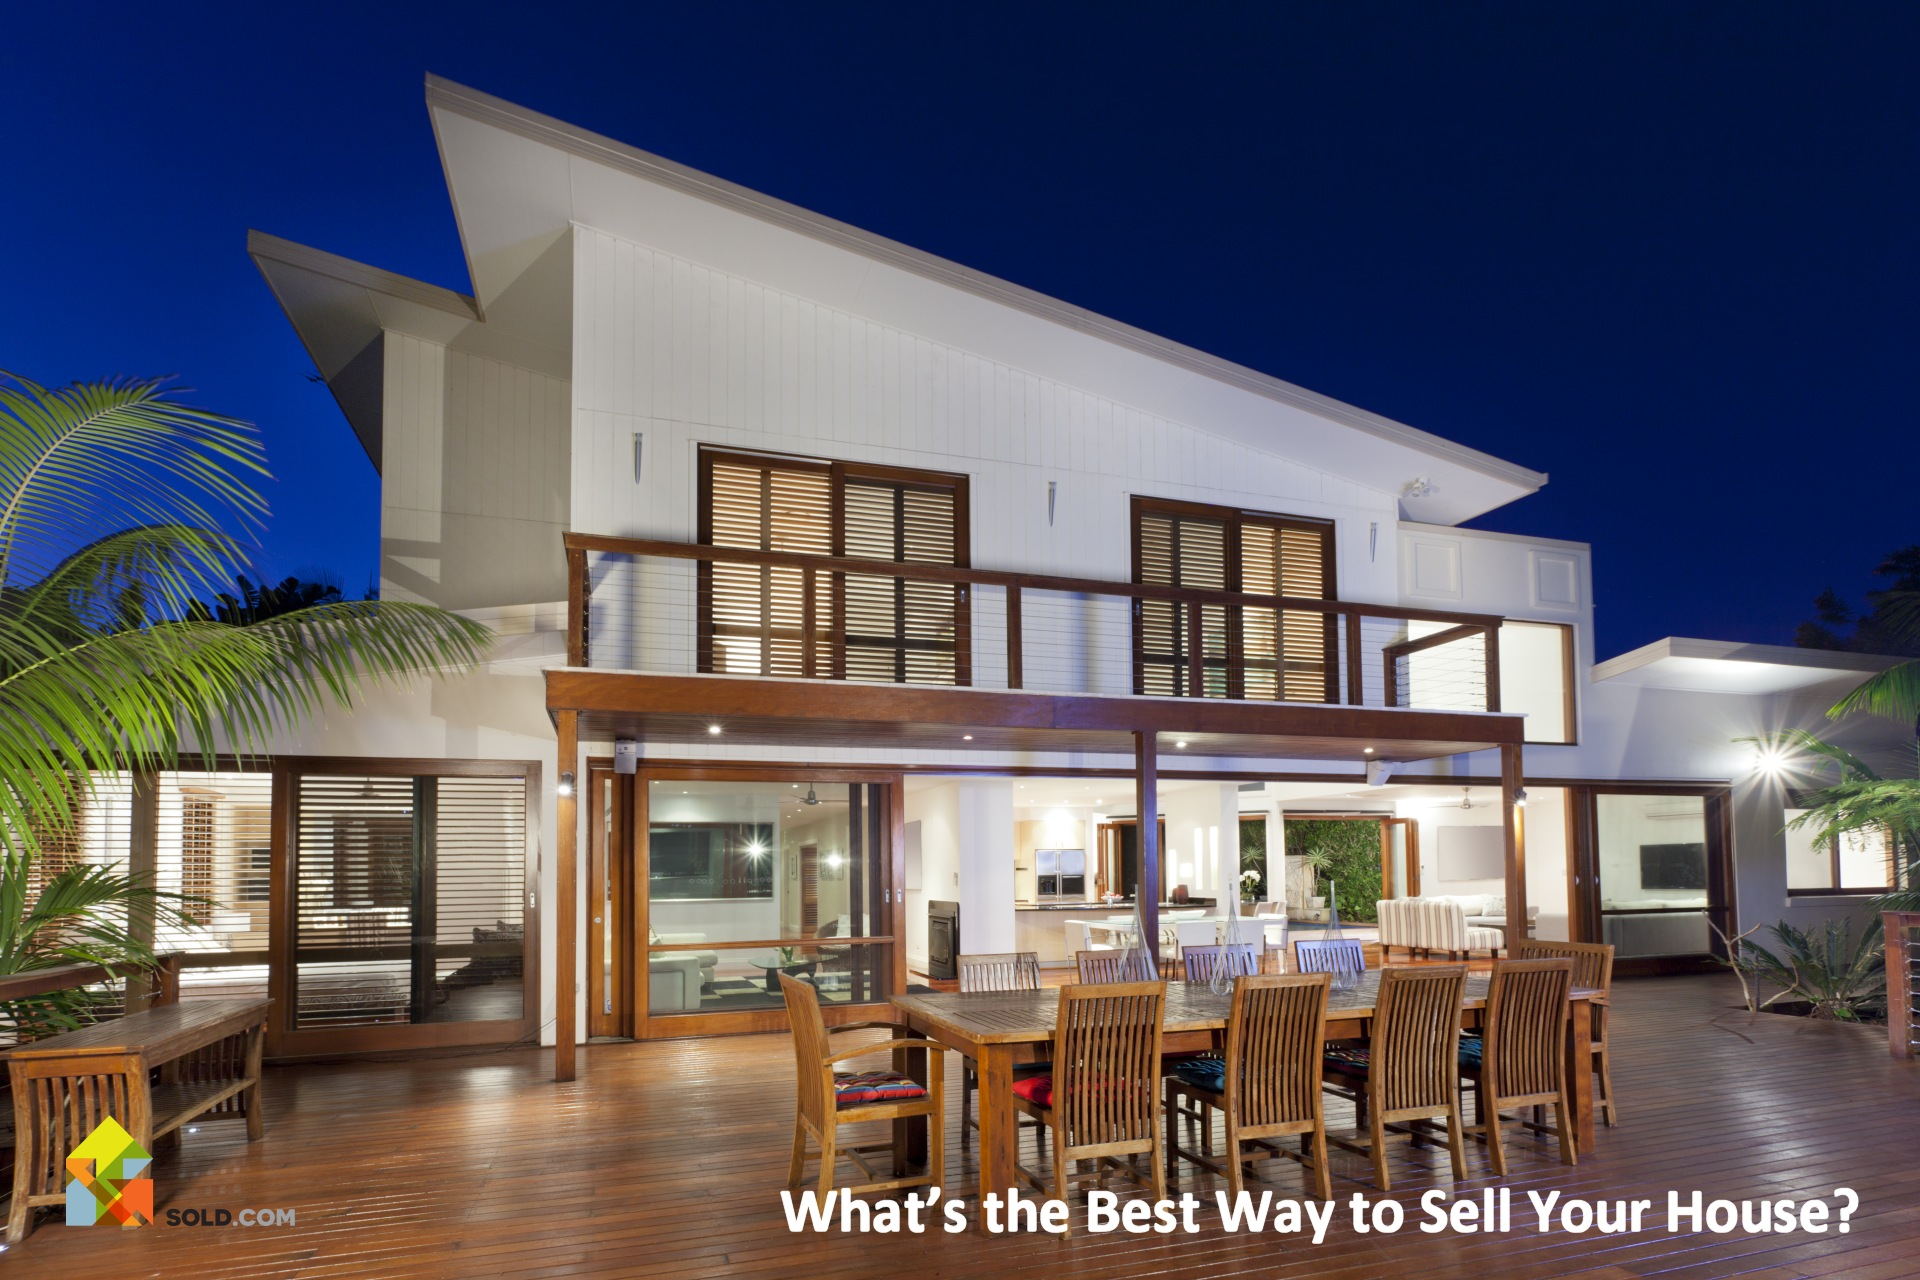 What's the Best Way to Sell Your House? Consider These 5 Options